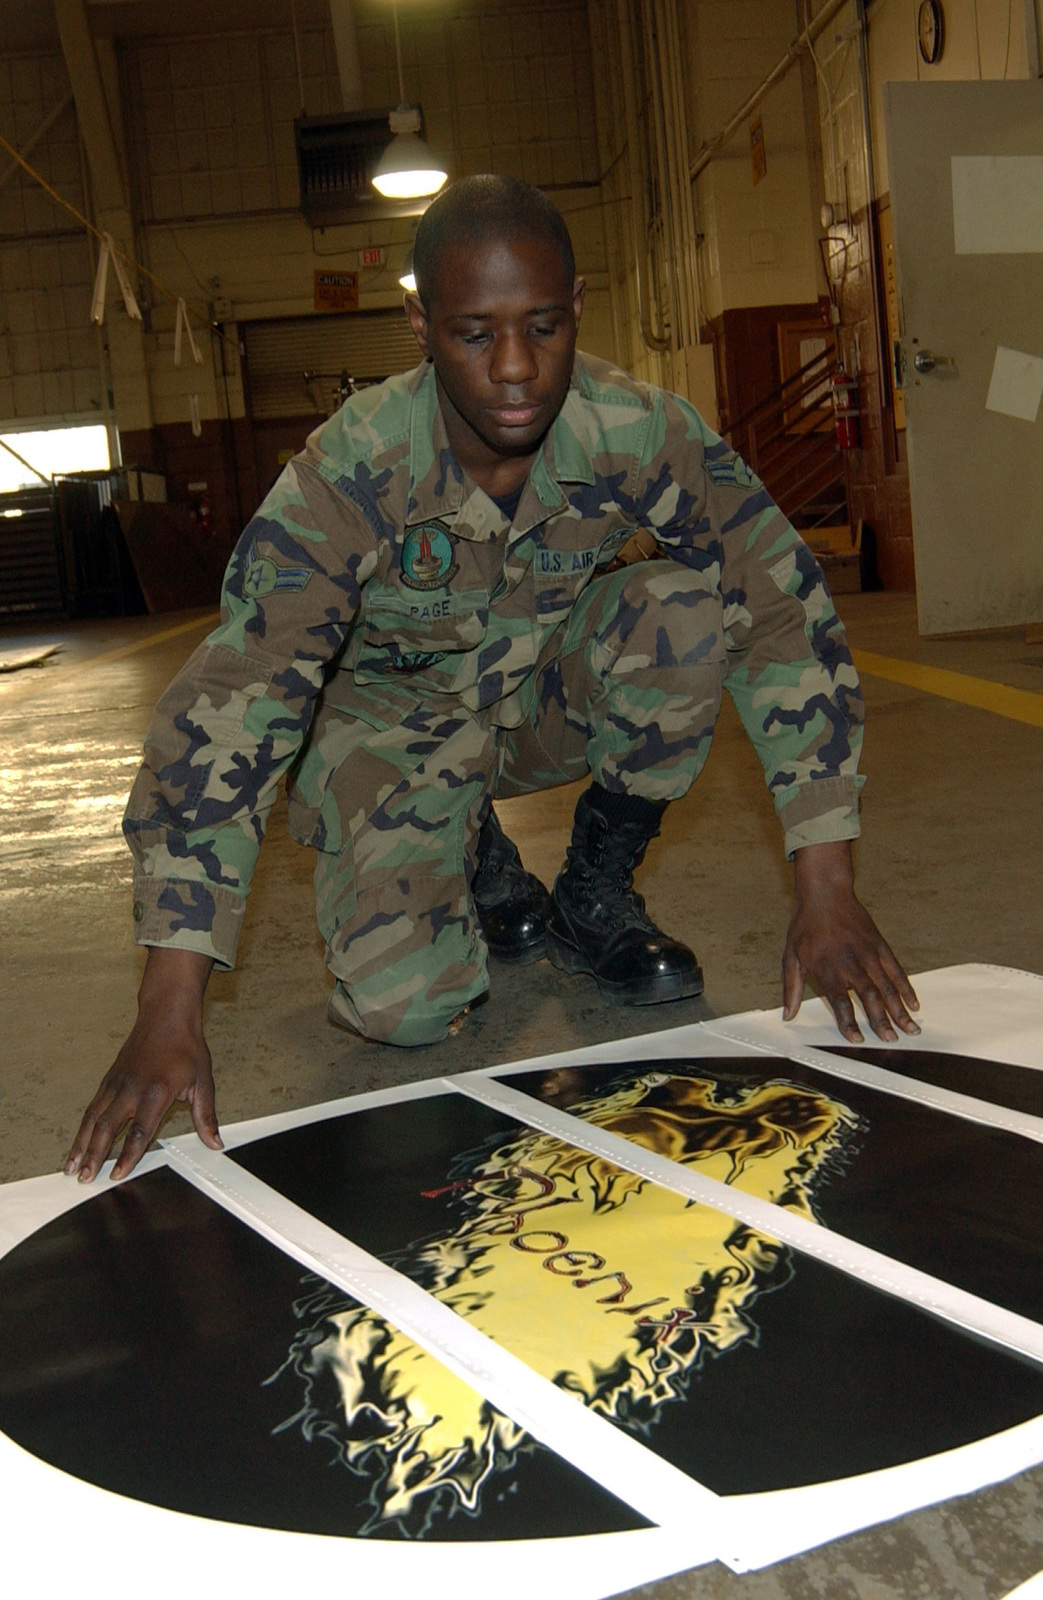 U.S. Air Force 2nd Maintenance Squadron aircraft structural maintenance journeyman AIRMAN 1ST Class Joseph Page, checks the print quality of a fresh B-52H nose art decal at Barksdale Air Force Base, La., on Dec. 10, 2004. (U.S. Air Force PHOTO by SENIOR AIRMAN Kevin A. Camara) (Released)